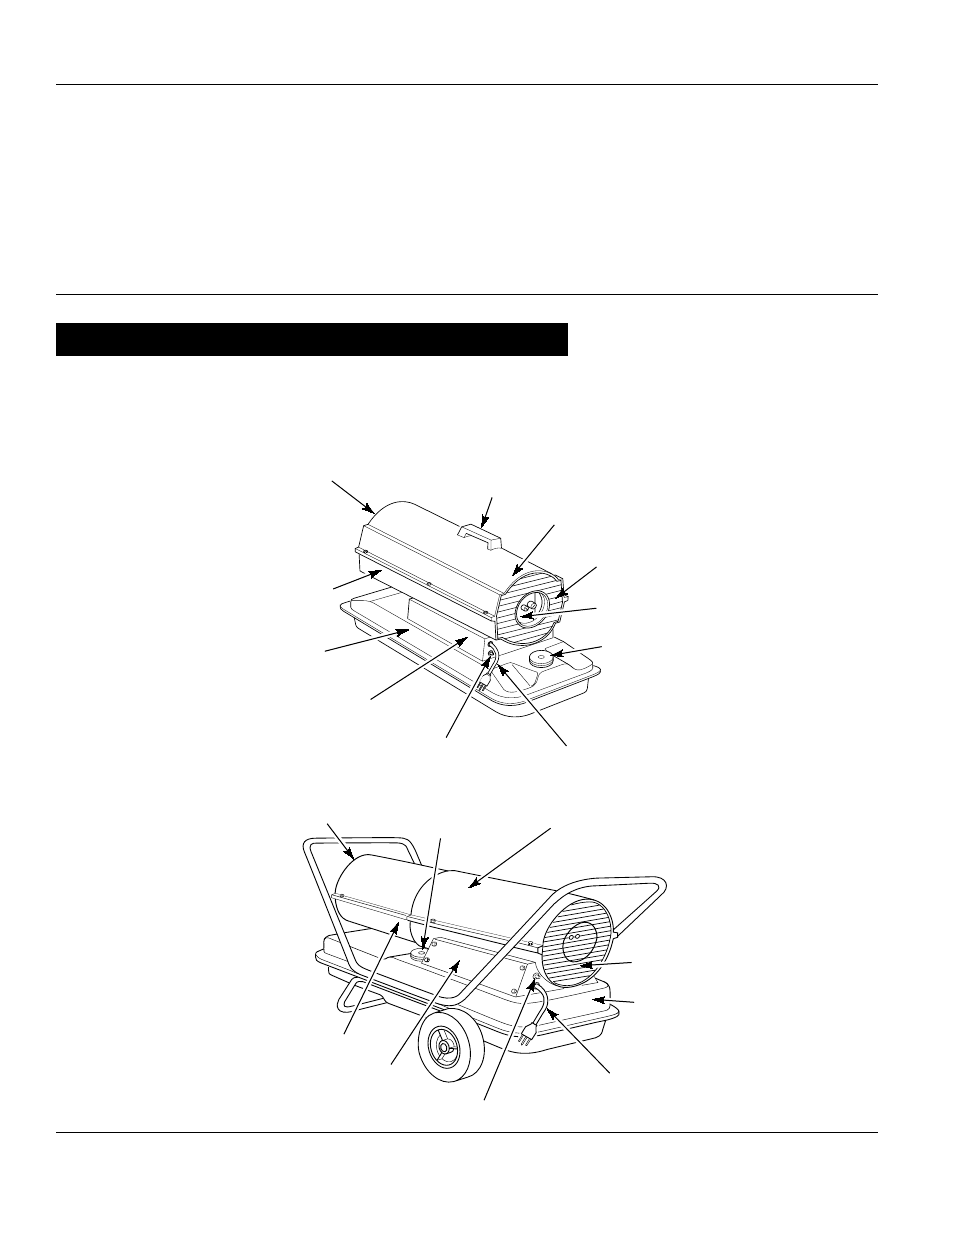 Dayton portable oil-fired heaters, Product identification